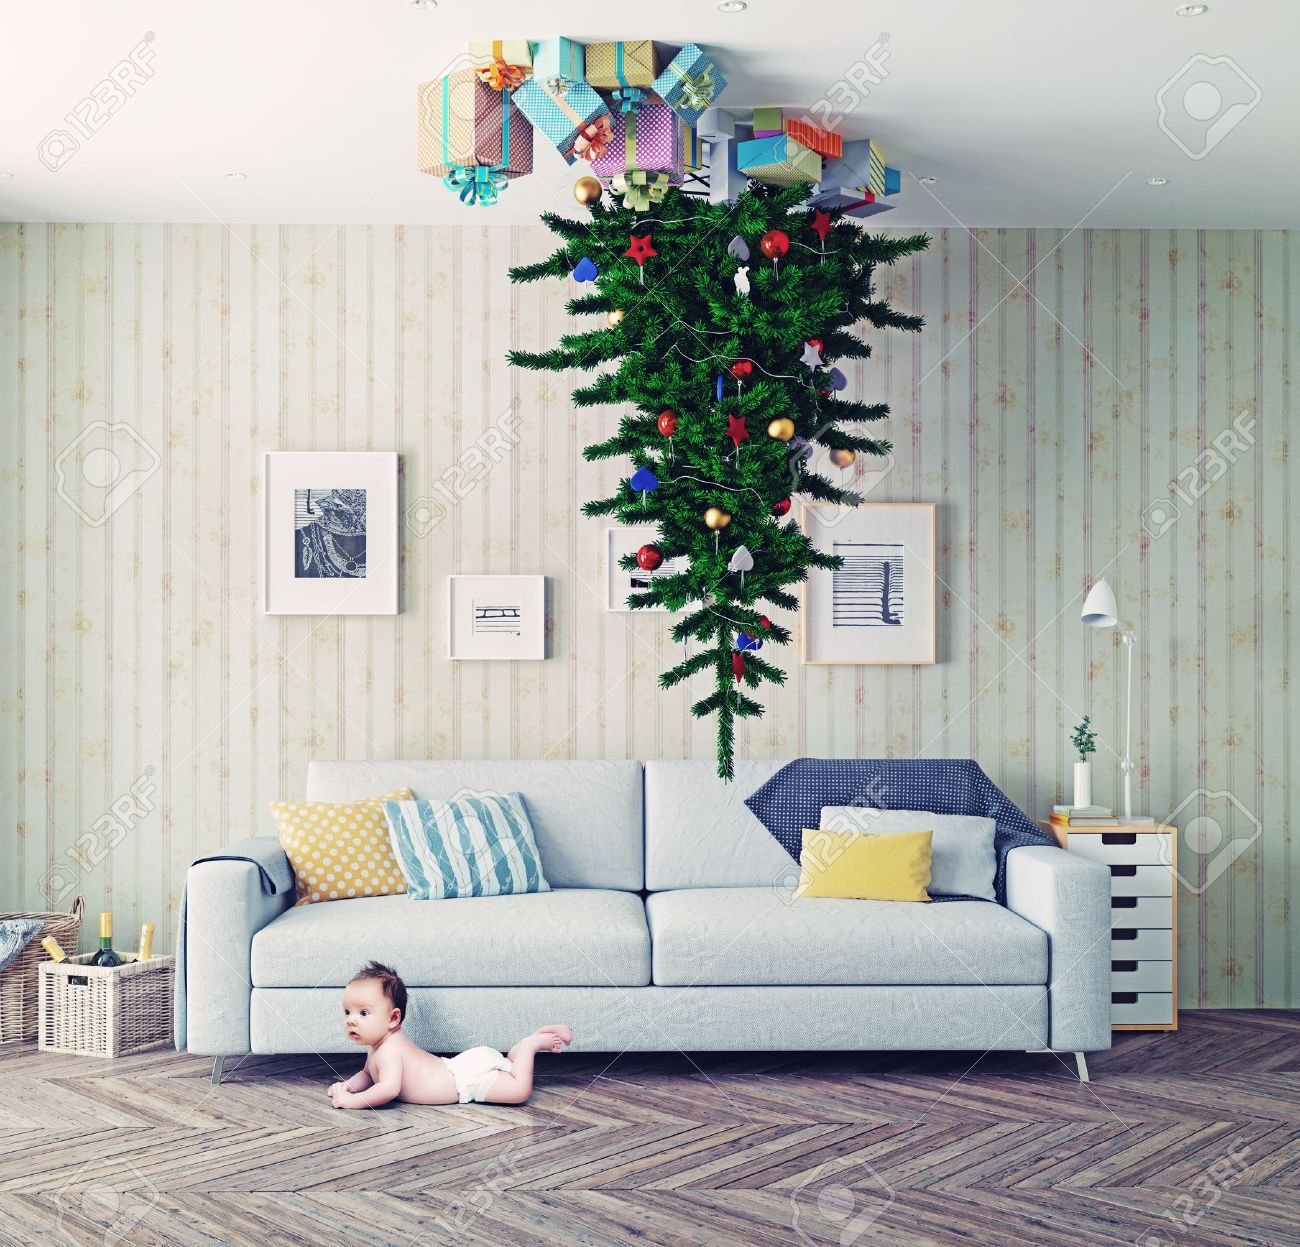 Room With A Christmas Tree On The Ceiling And Surprised Baby ...